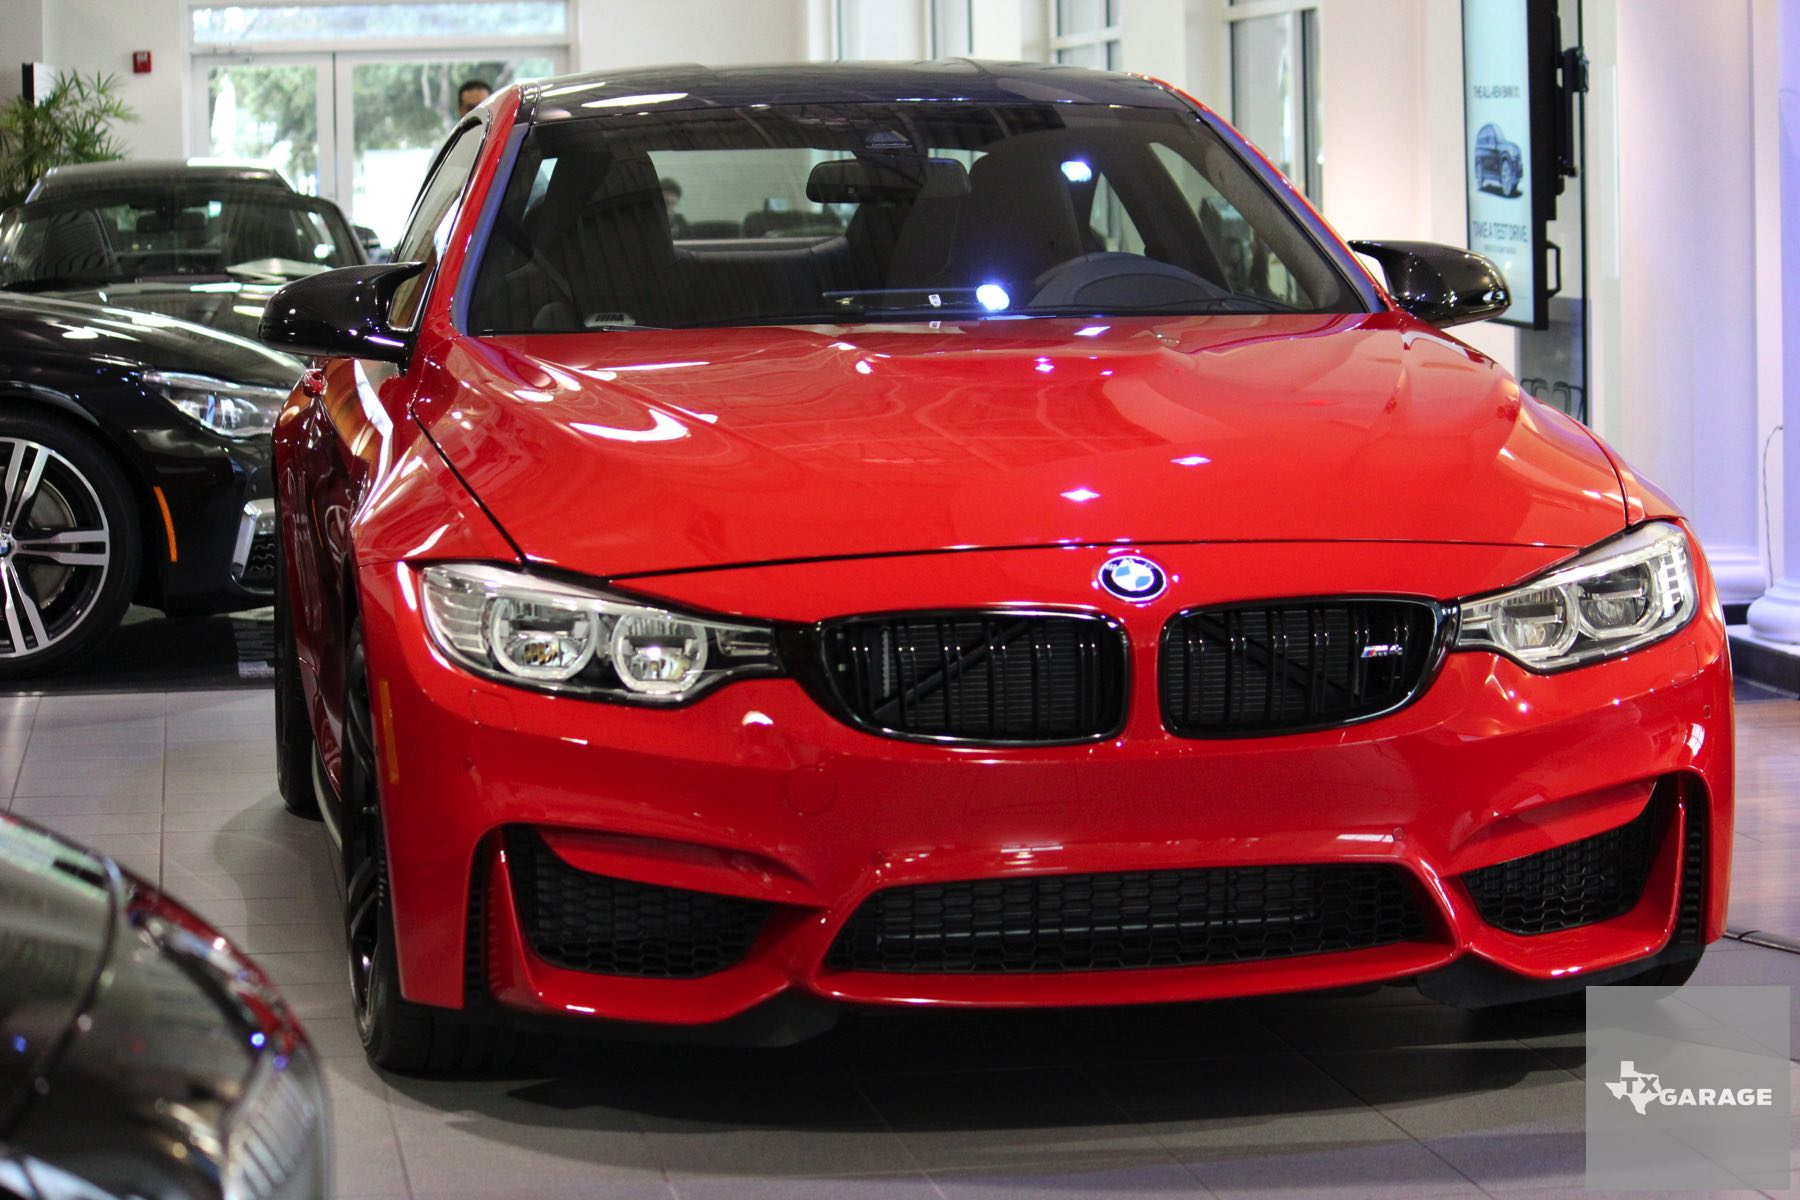 2016 BMW M4 Coupe Ferrari Red | txGarage